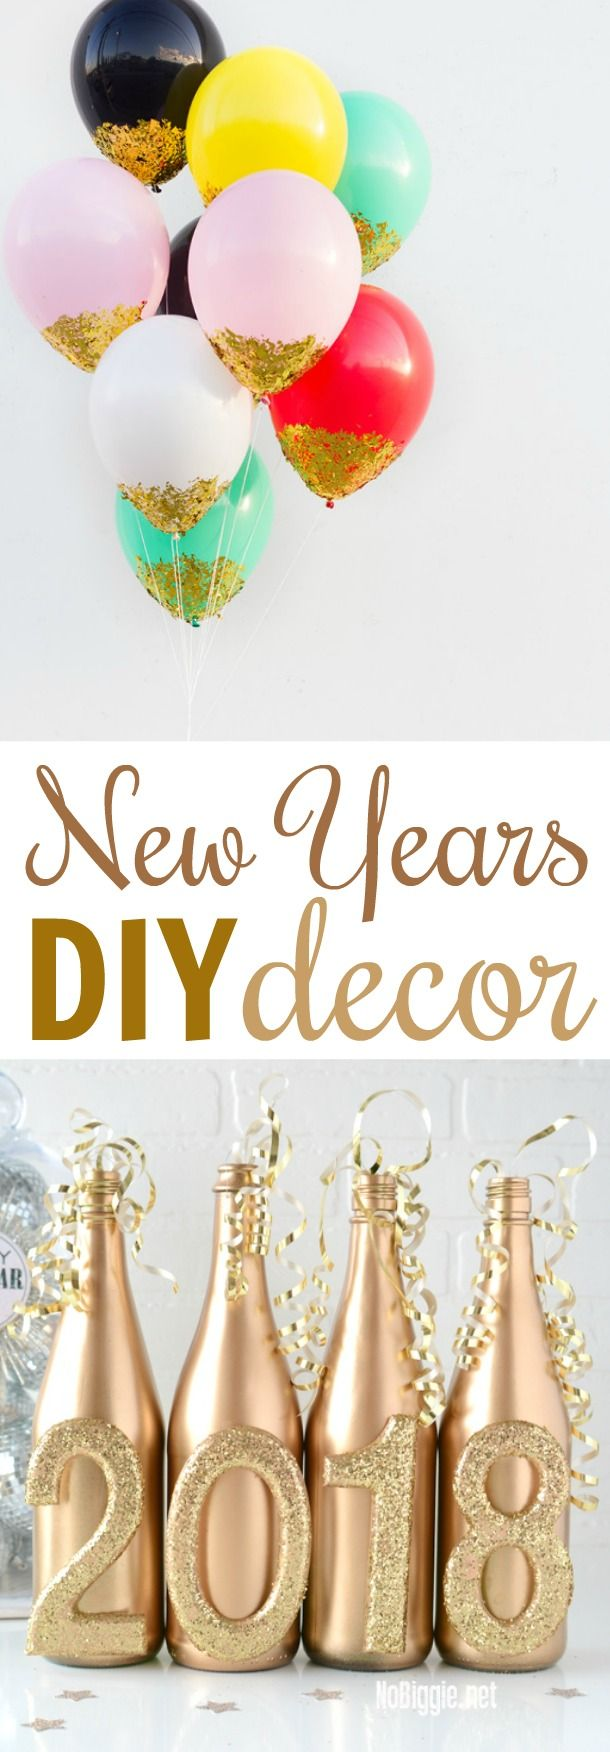 New Years DIY Decor New year diy, Diy gifts for kids